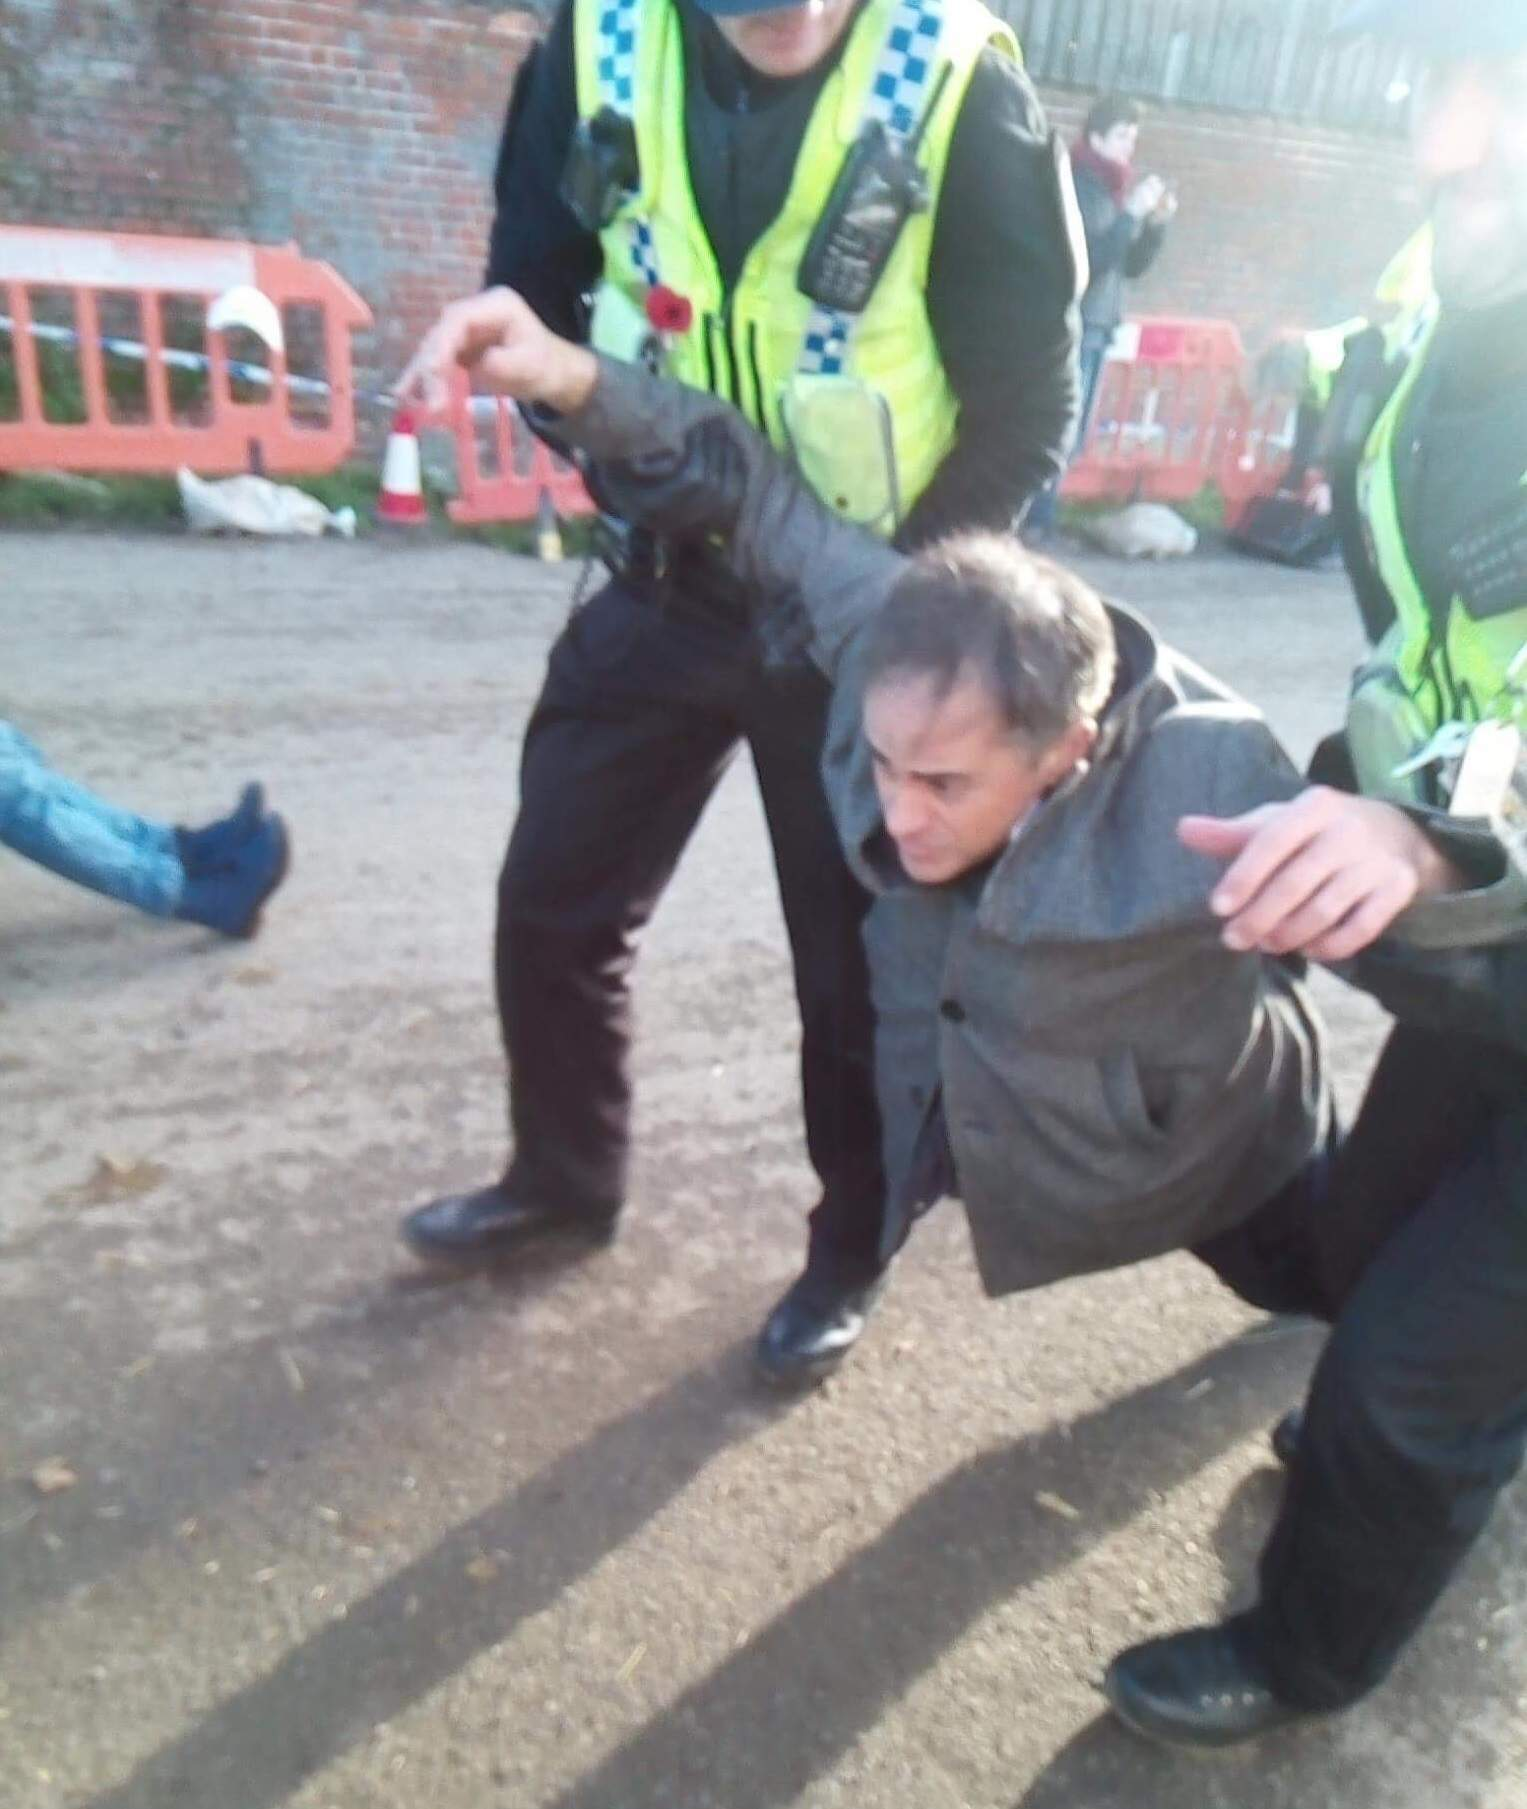 Police aggression can't beat the moral force of the green movement